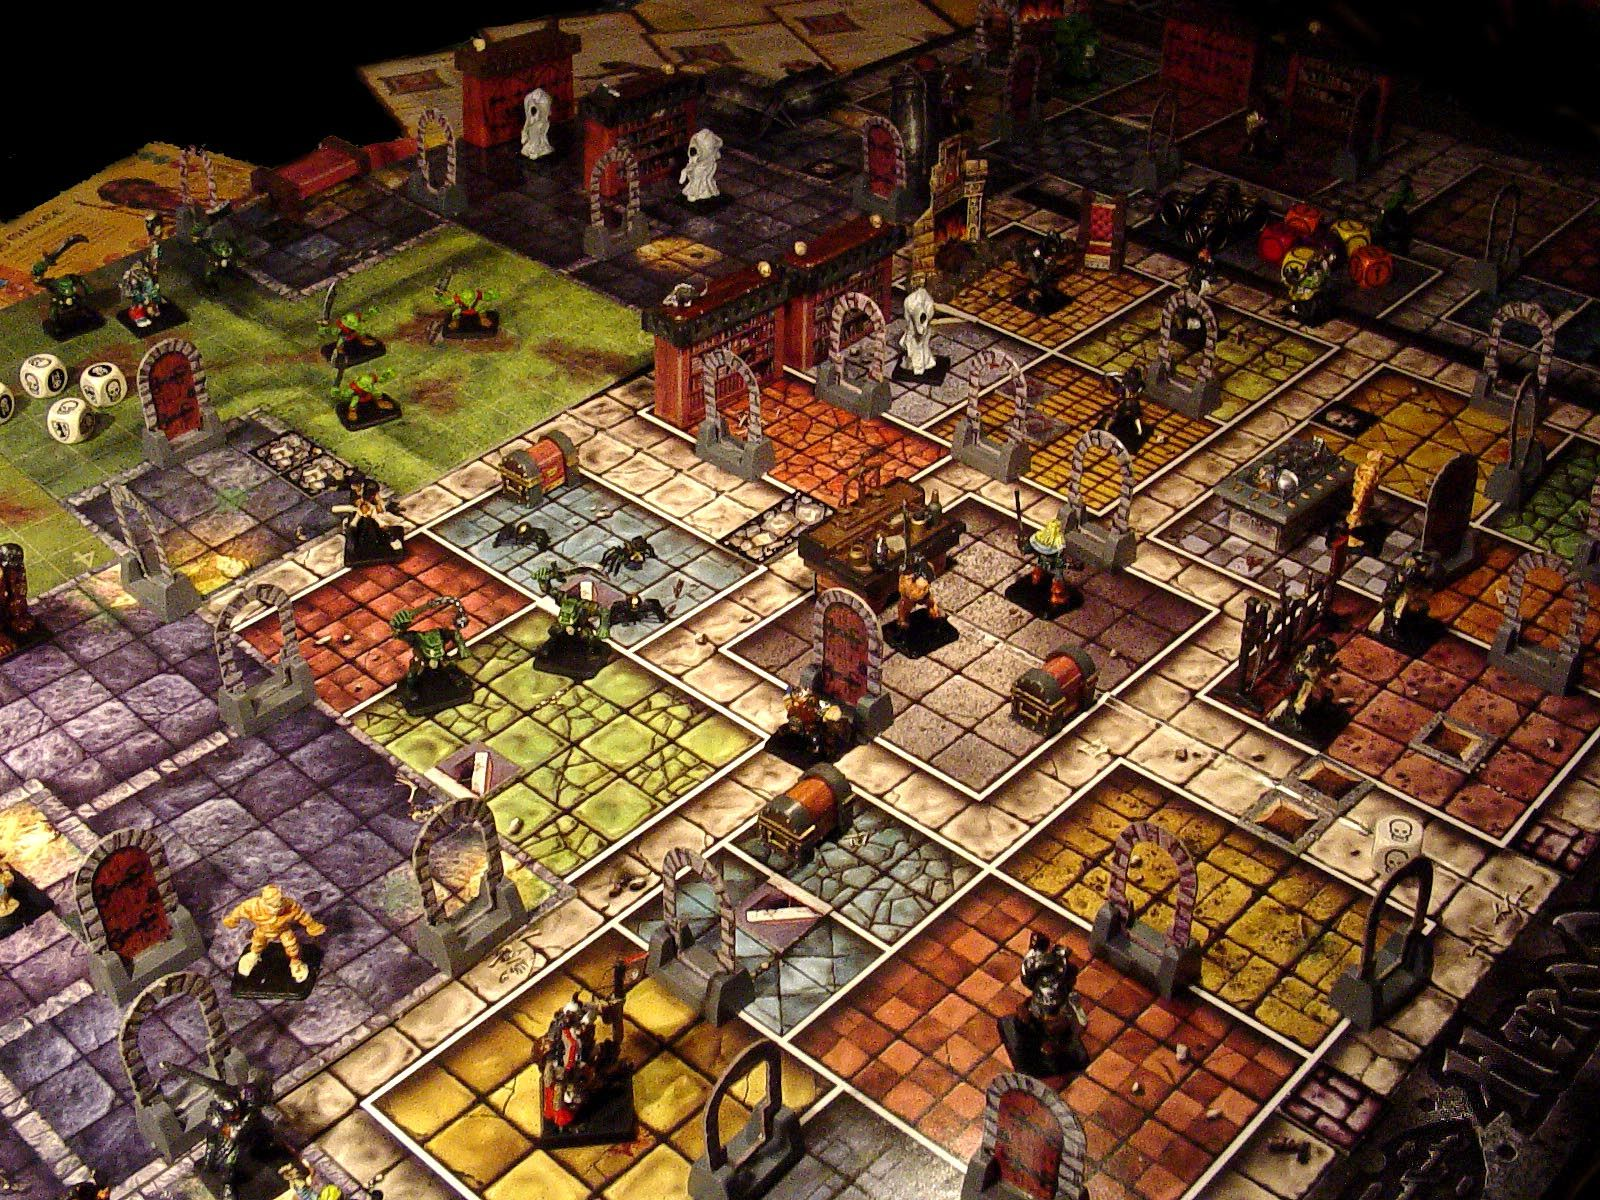 Image of a Dungeons and Dragons board game